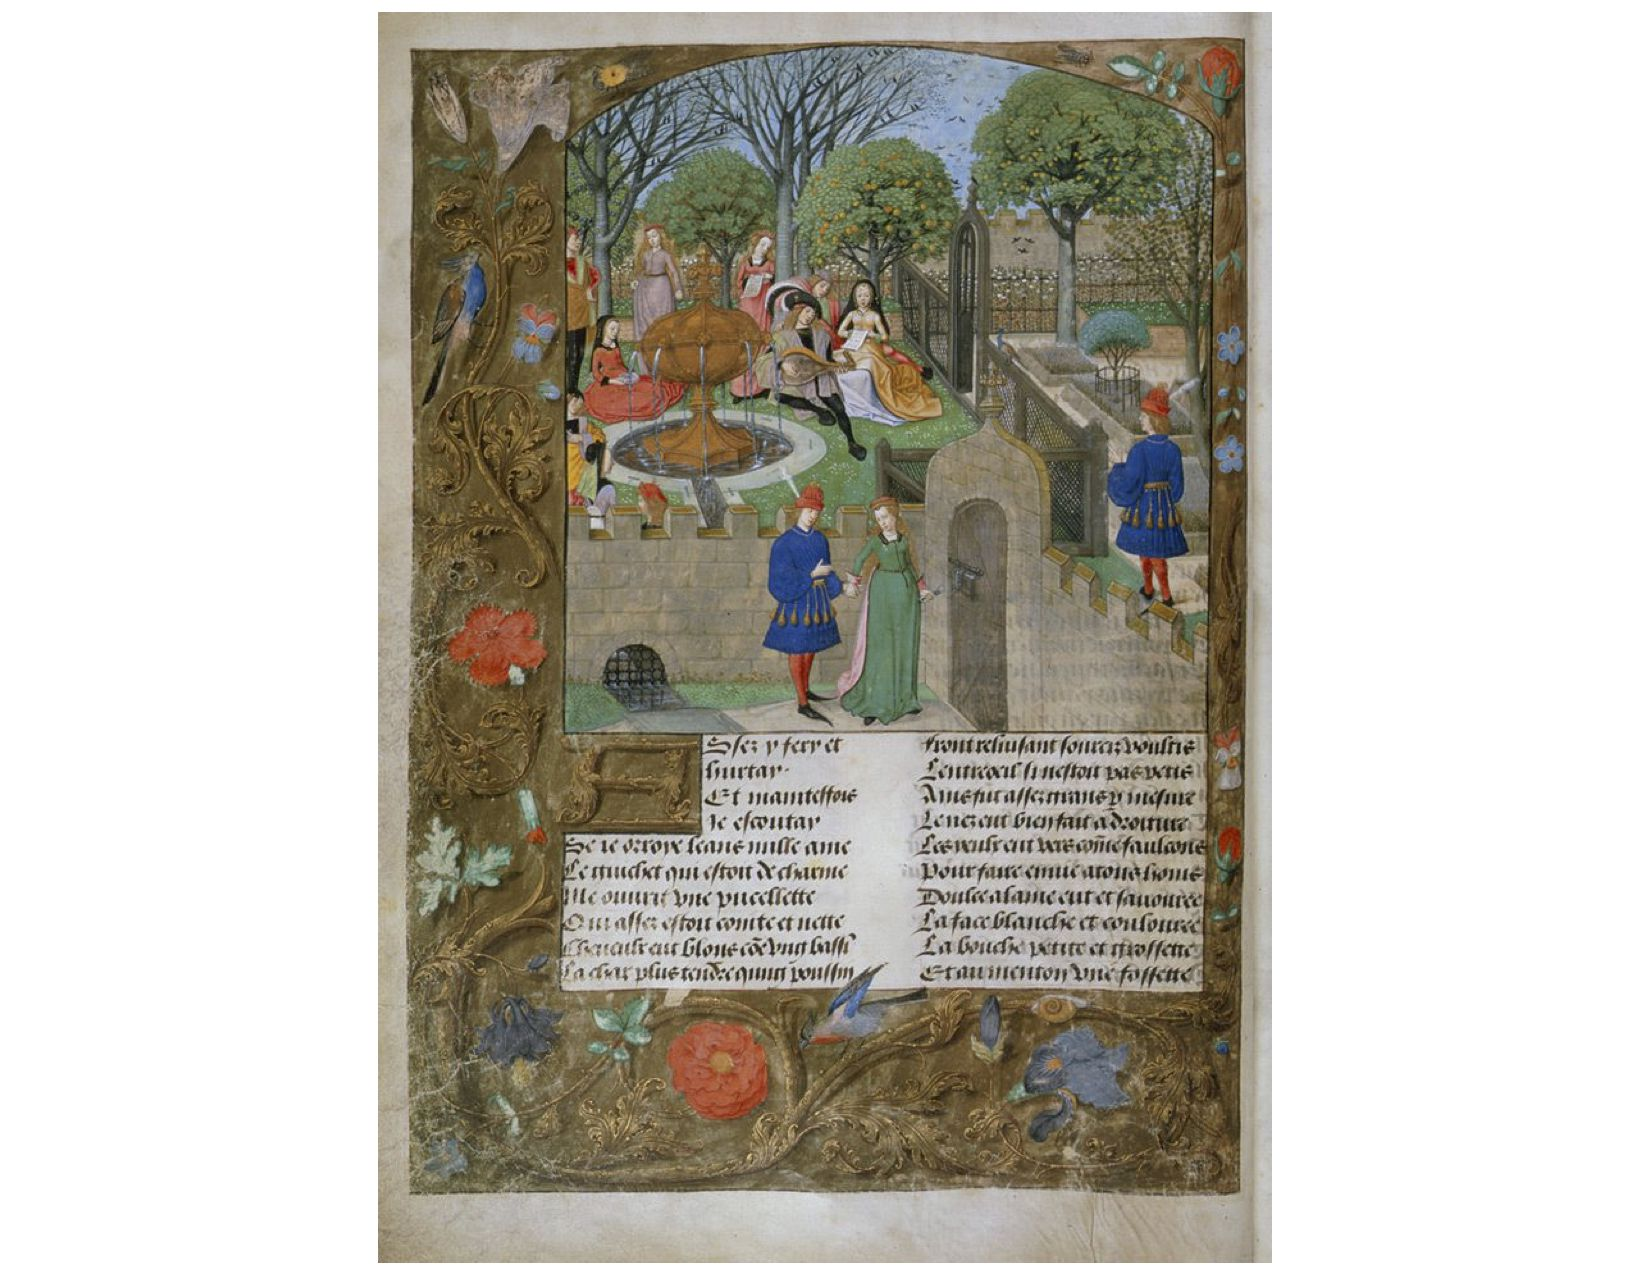 The Medieval Chivalric Romance